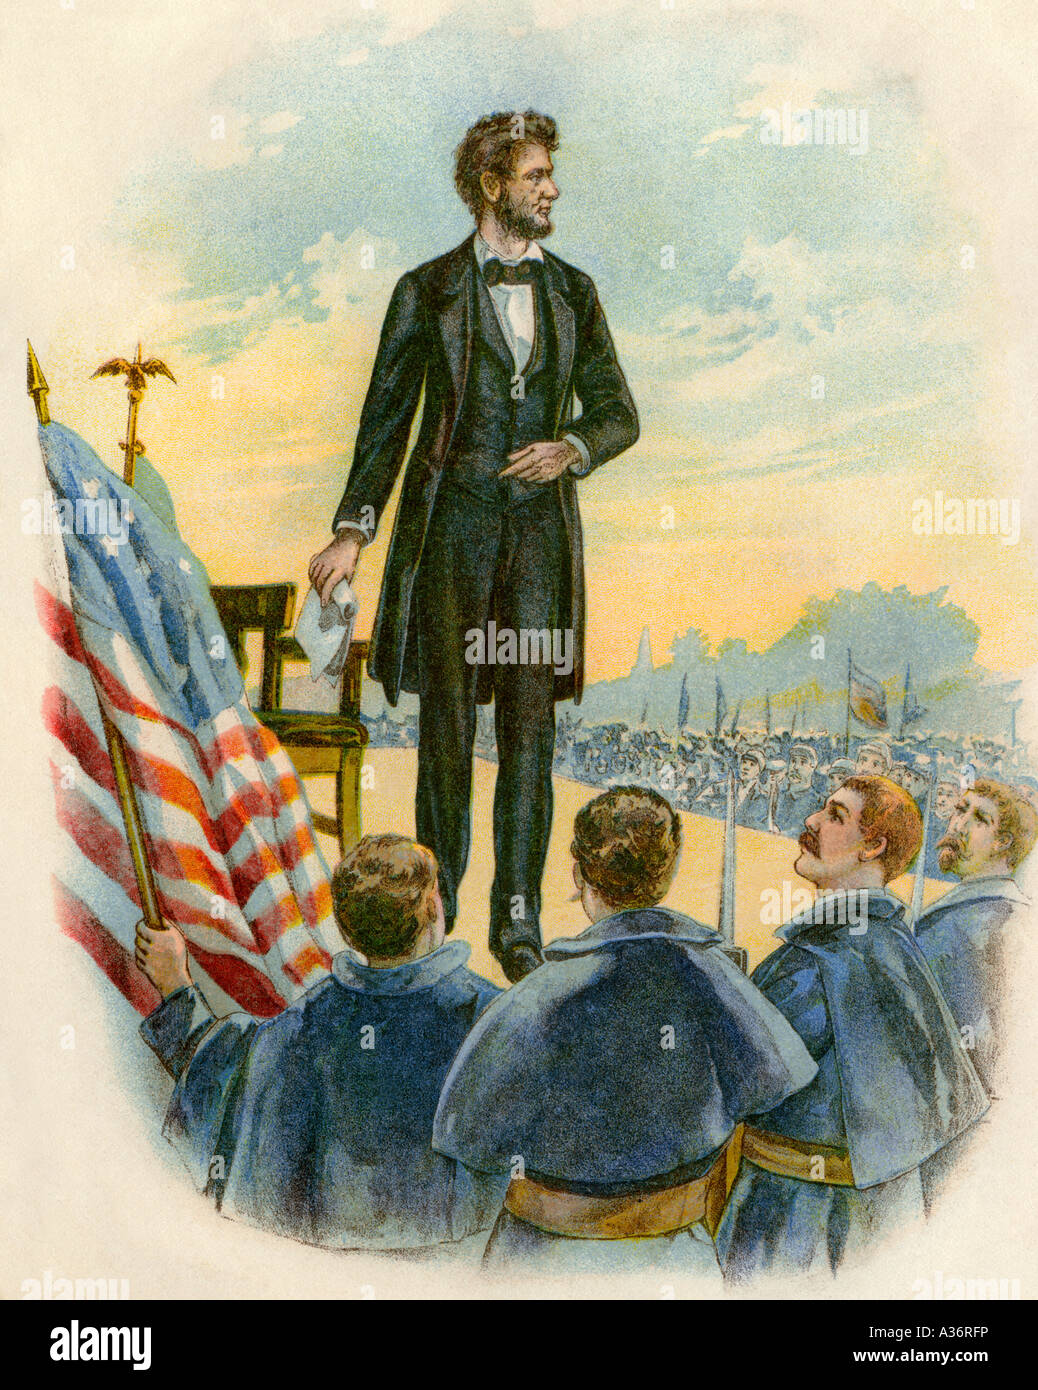 President Abraham Lincoln delivering the Gettysburg Address on the battlefield during the Civil War 1863 - Stock Image